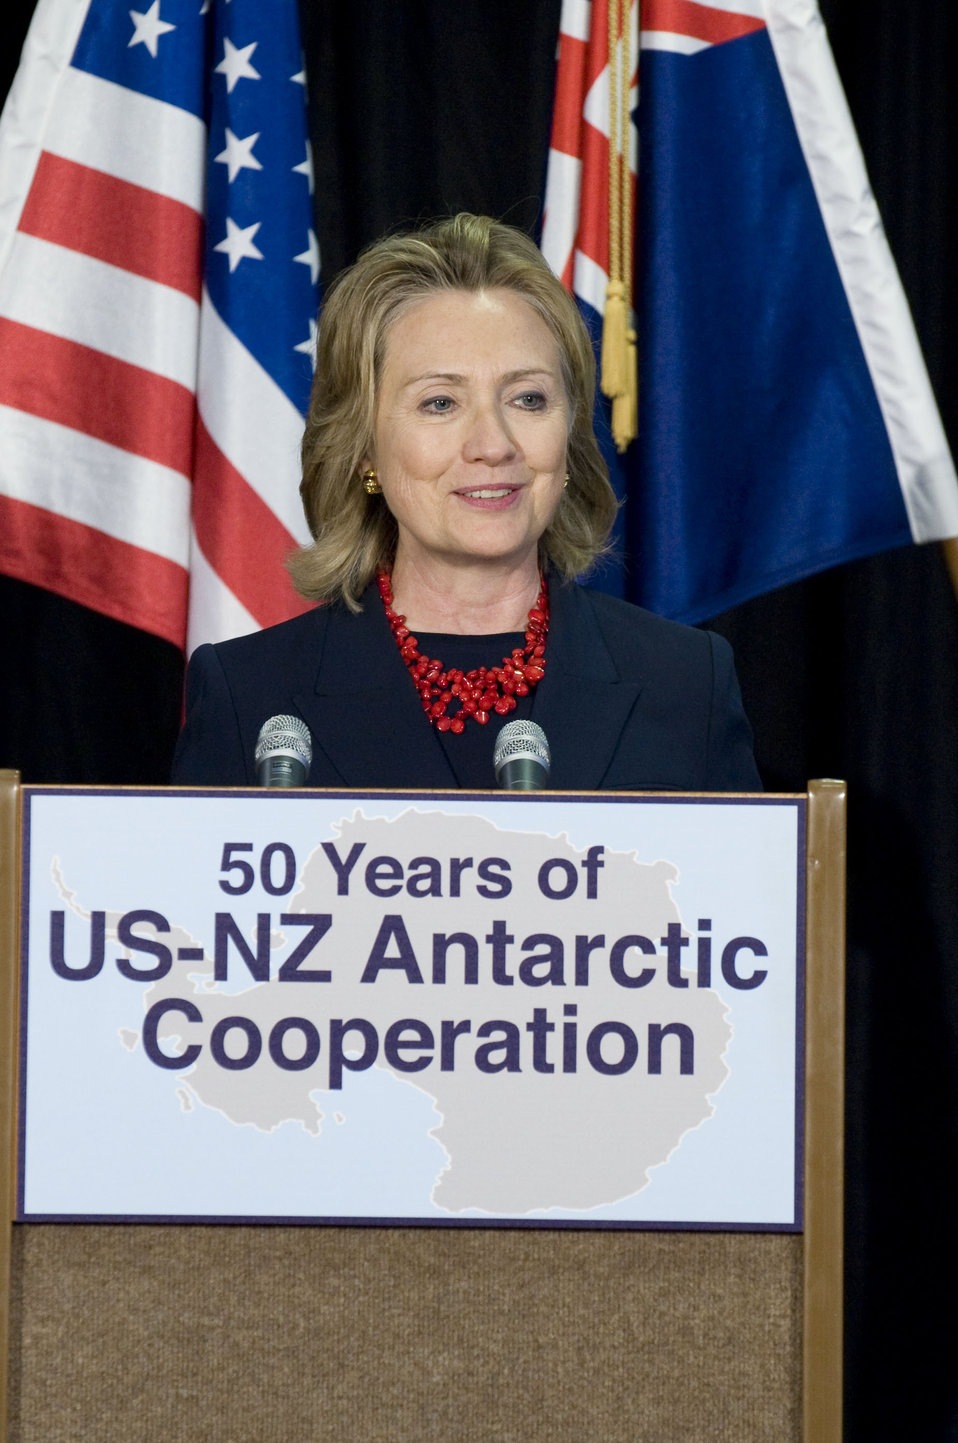 Secretary Clinton Delivers Remarks on the Antarctic Program